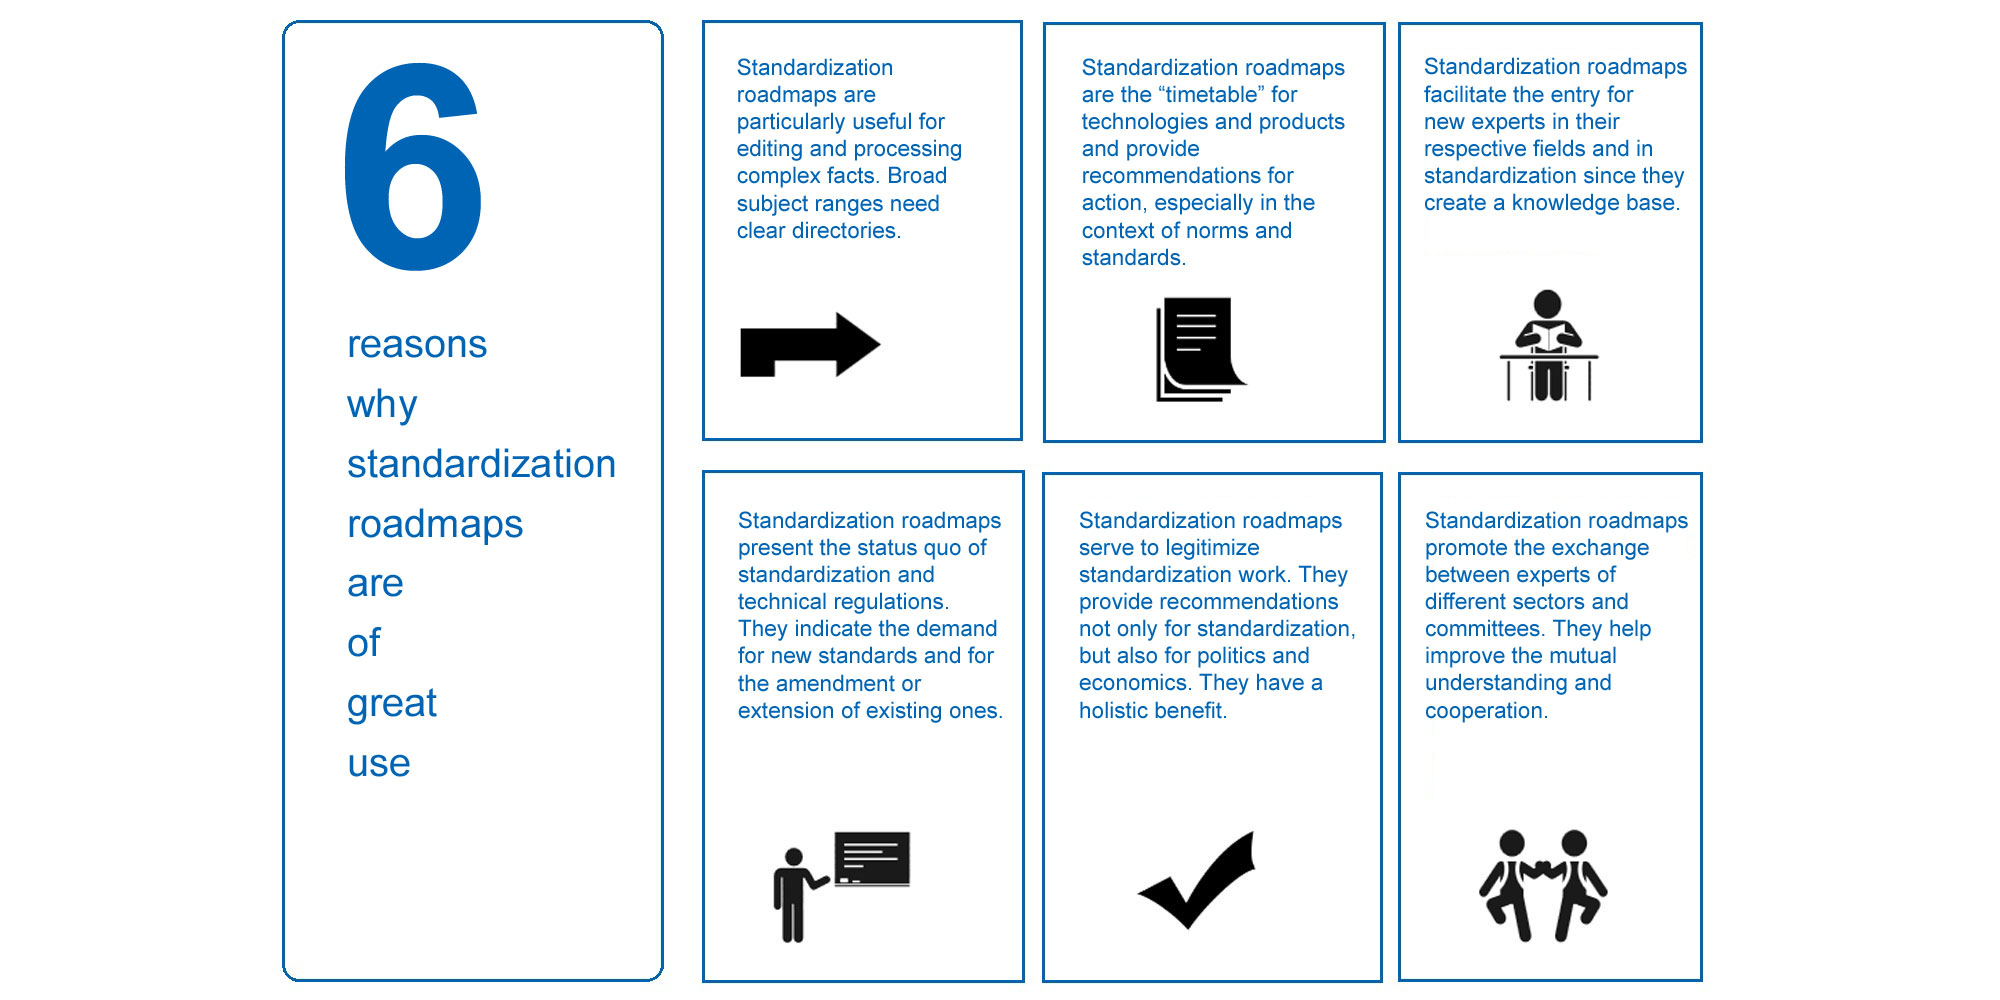 The 6 most important facts about standardization roadmaps